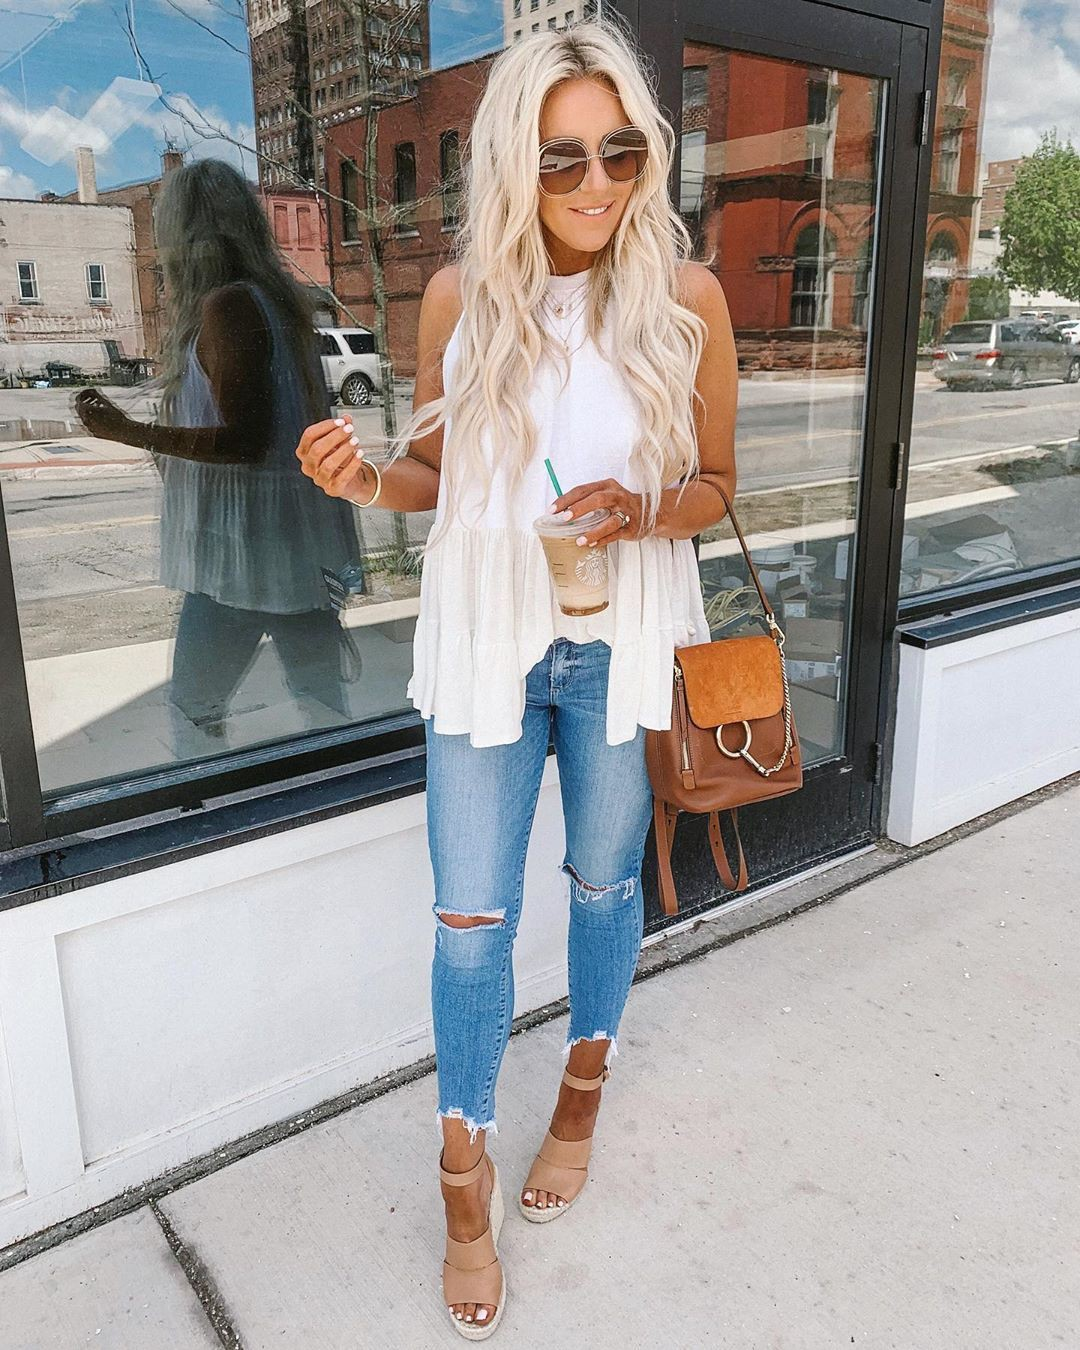 Orange and brown colour dress with sleeveless shirt, ripped jeans, trousers